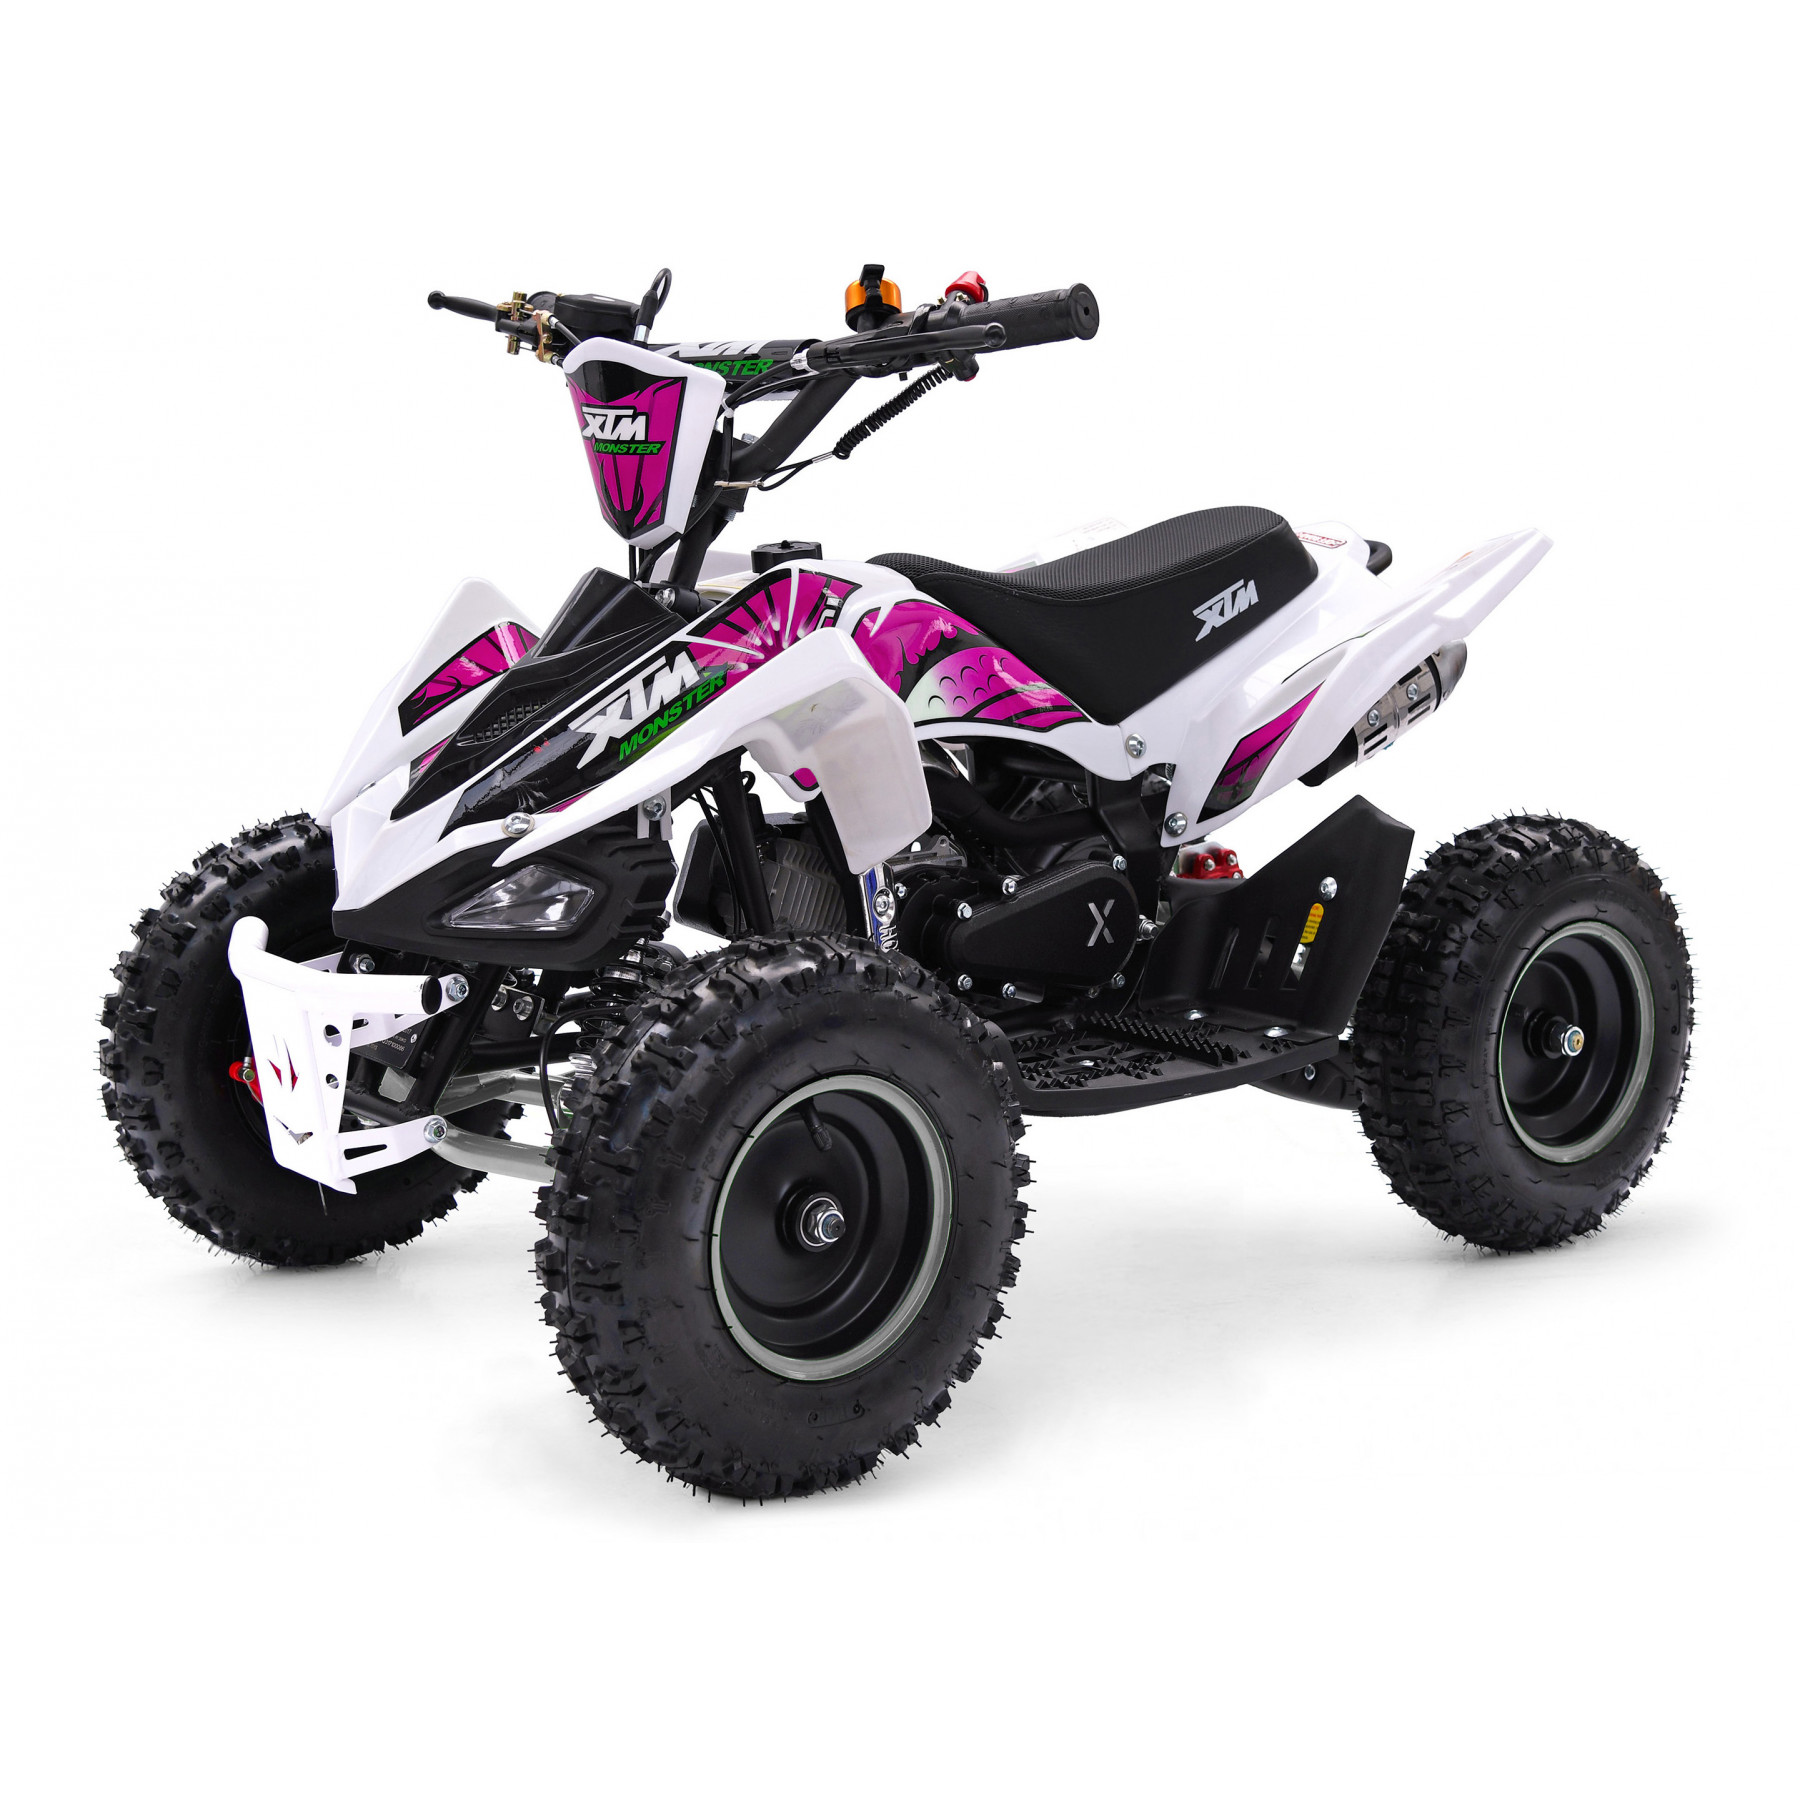 XTM MONSTER 50cc QUAD BIKE WHITE PINK